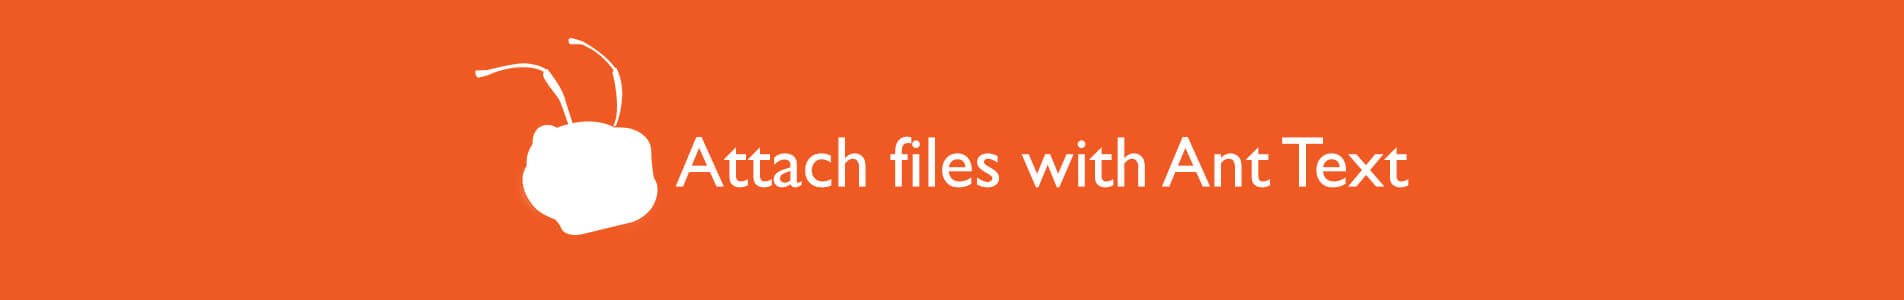 Header attach files with Ant Text